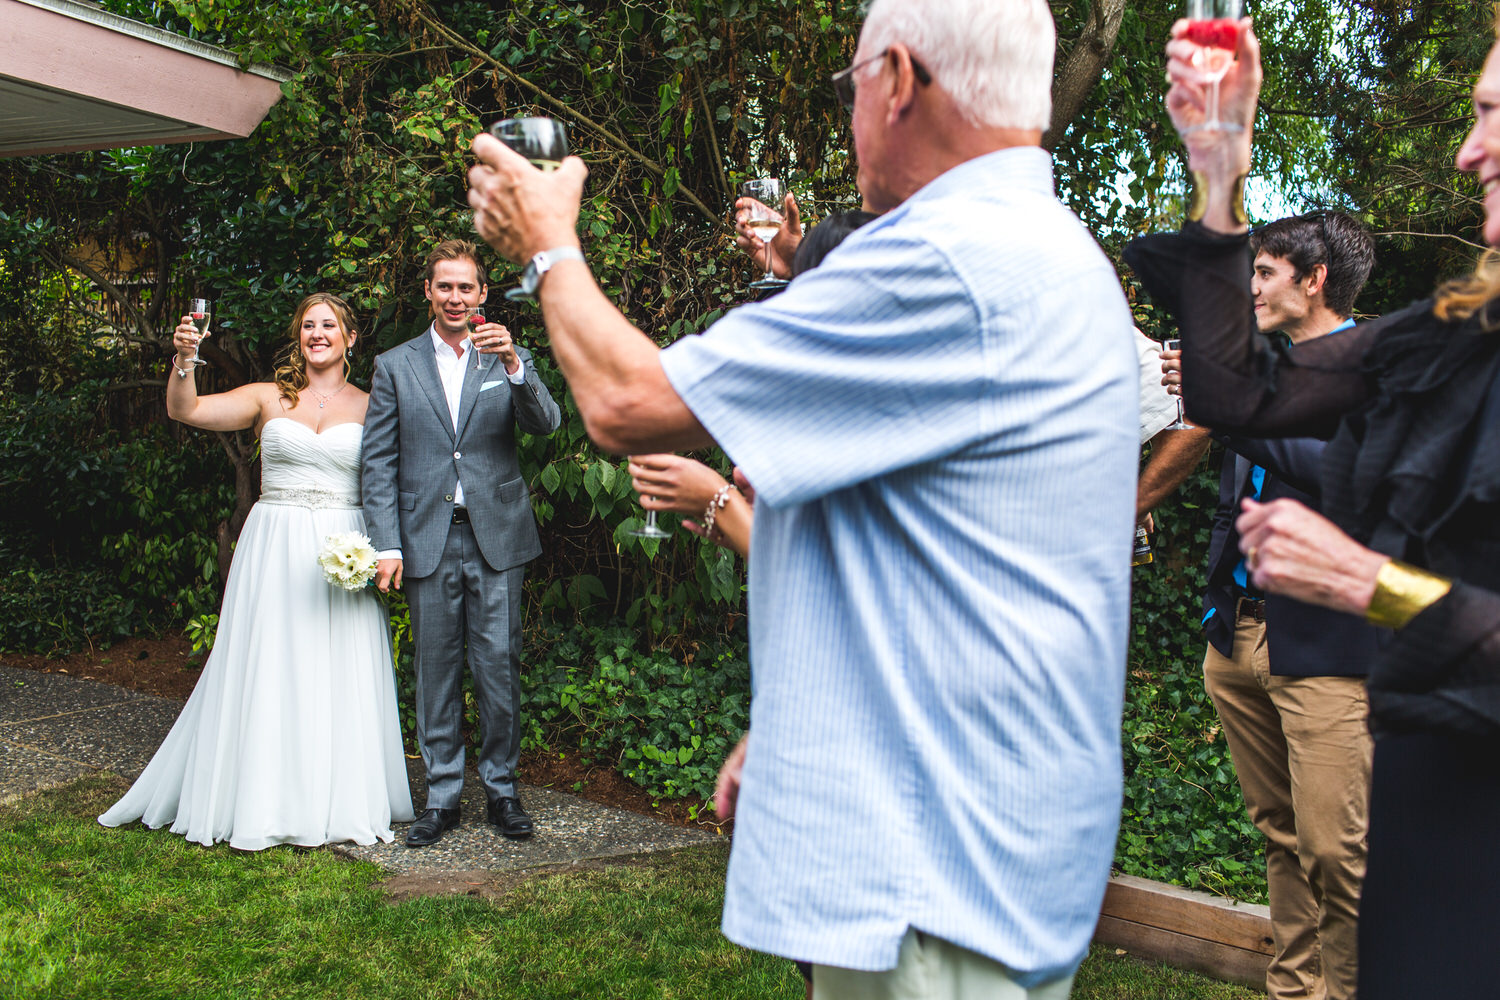 guests toast bride and groom at an intimate backyard wedding